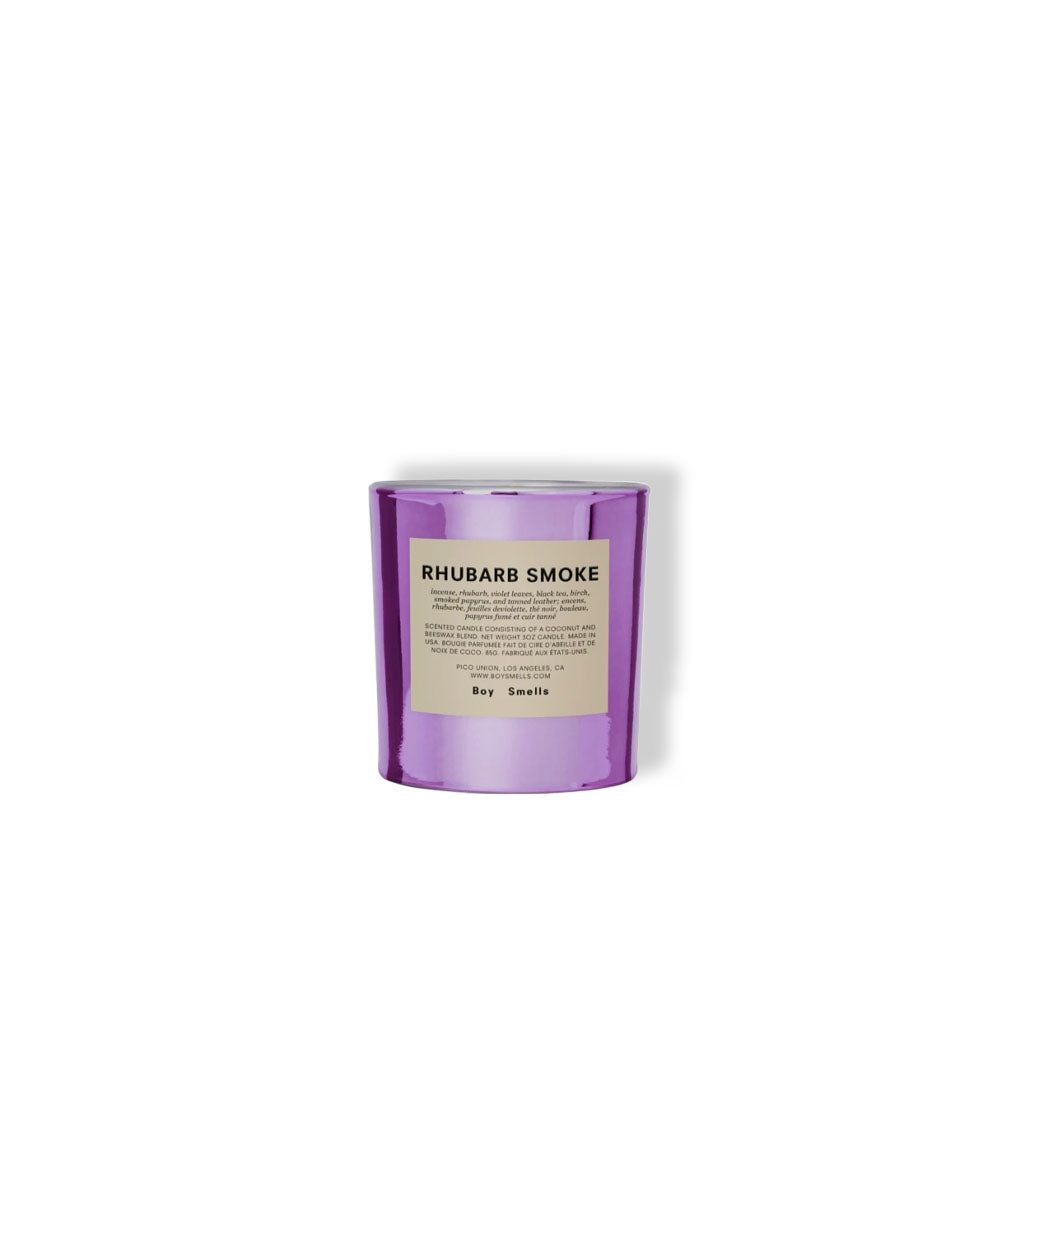 Candle, Rhubarb Smoke Limited Edition - LEMON LAINE - Accessories (Wellness) - Boy Smells